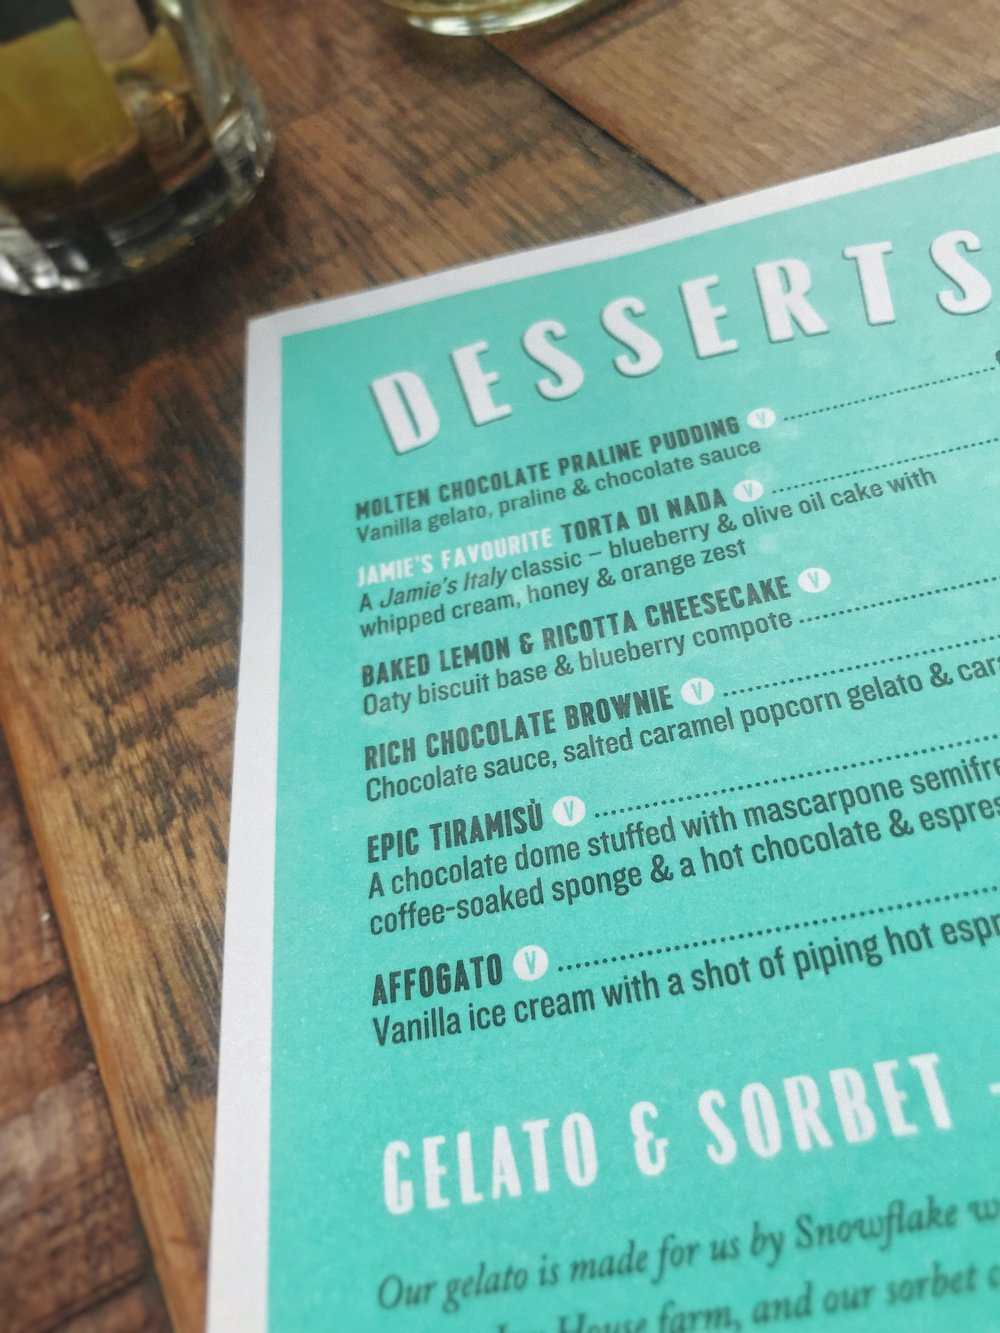 Dessert menu at Jamie's